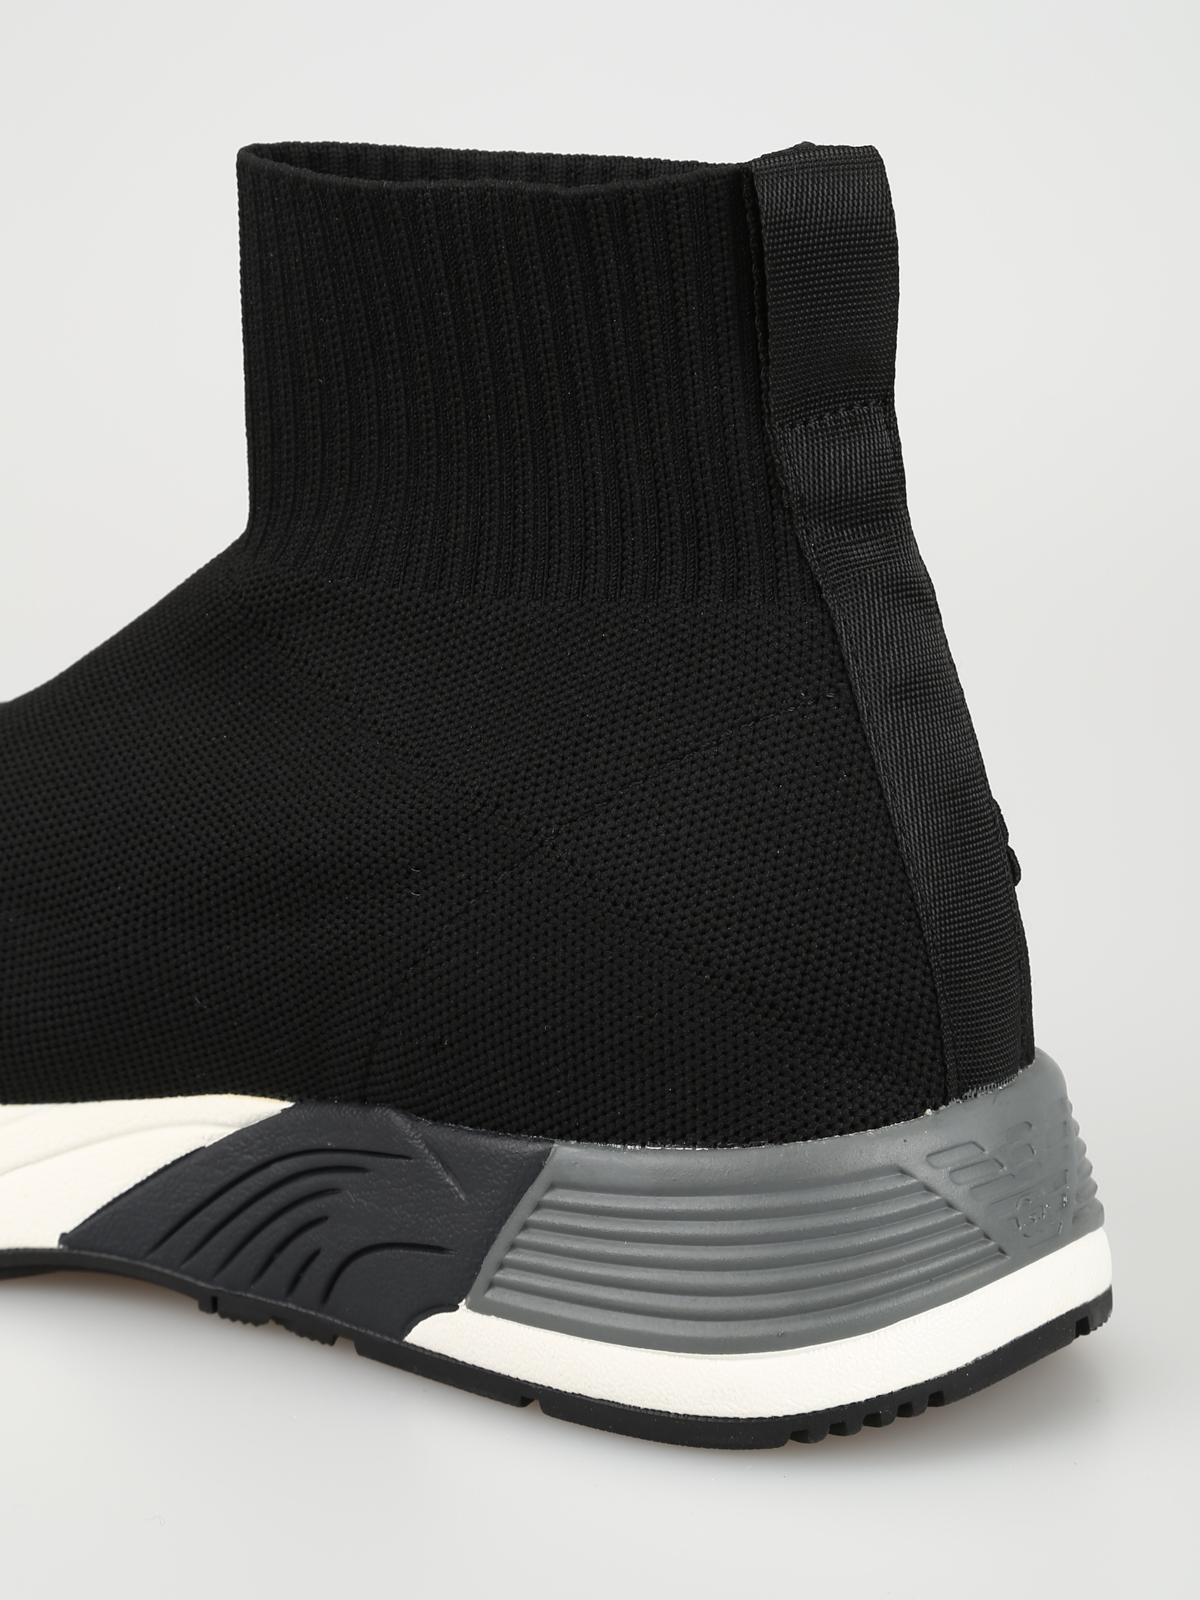 Patch detail sock style knit slip-ons